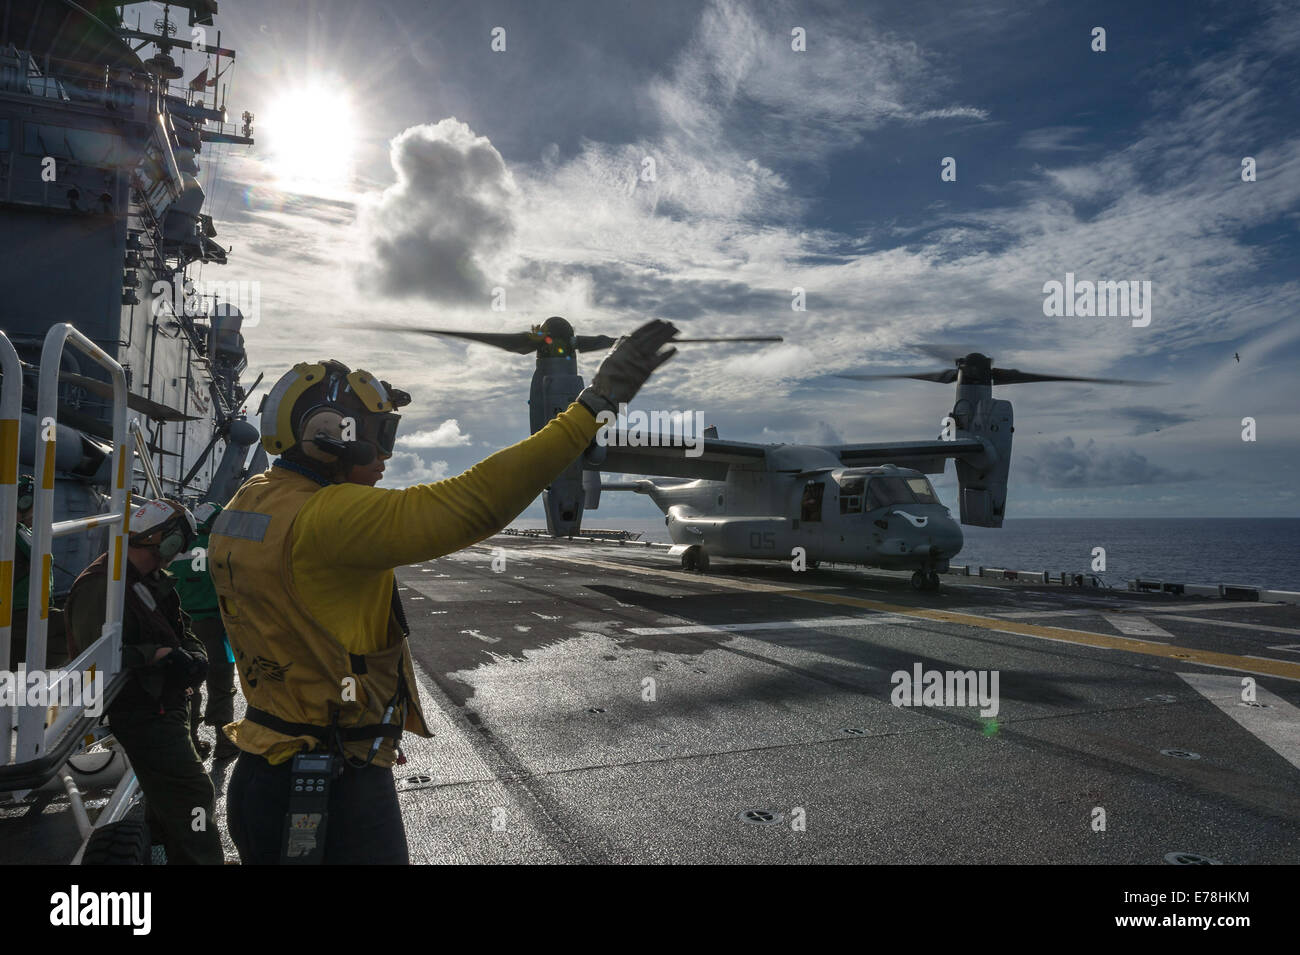 U.S. Navy Airman Juillian R. Sawyer signals to the pilots of a Marine Corps MV-22B Osprey tiltrotor aircraft assigned - Stock Image